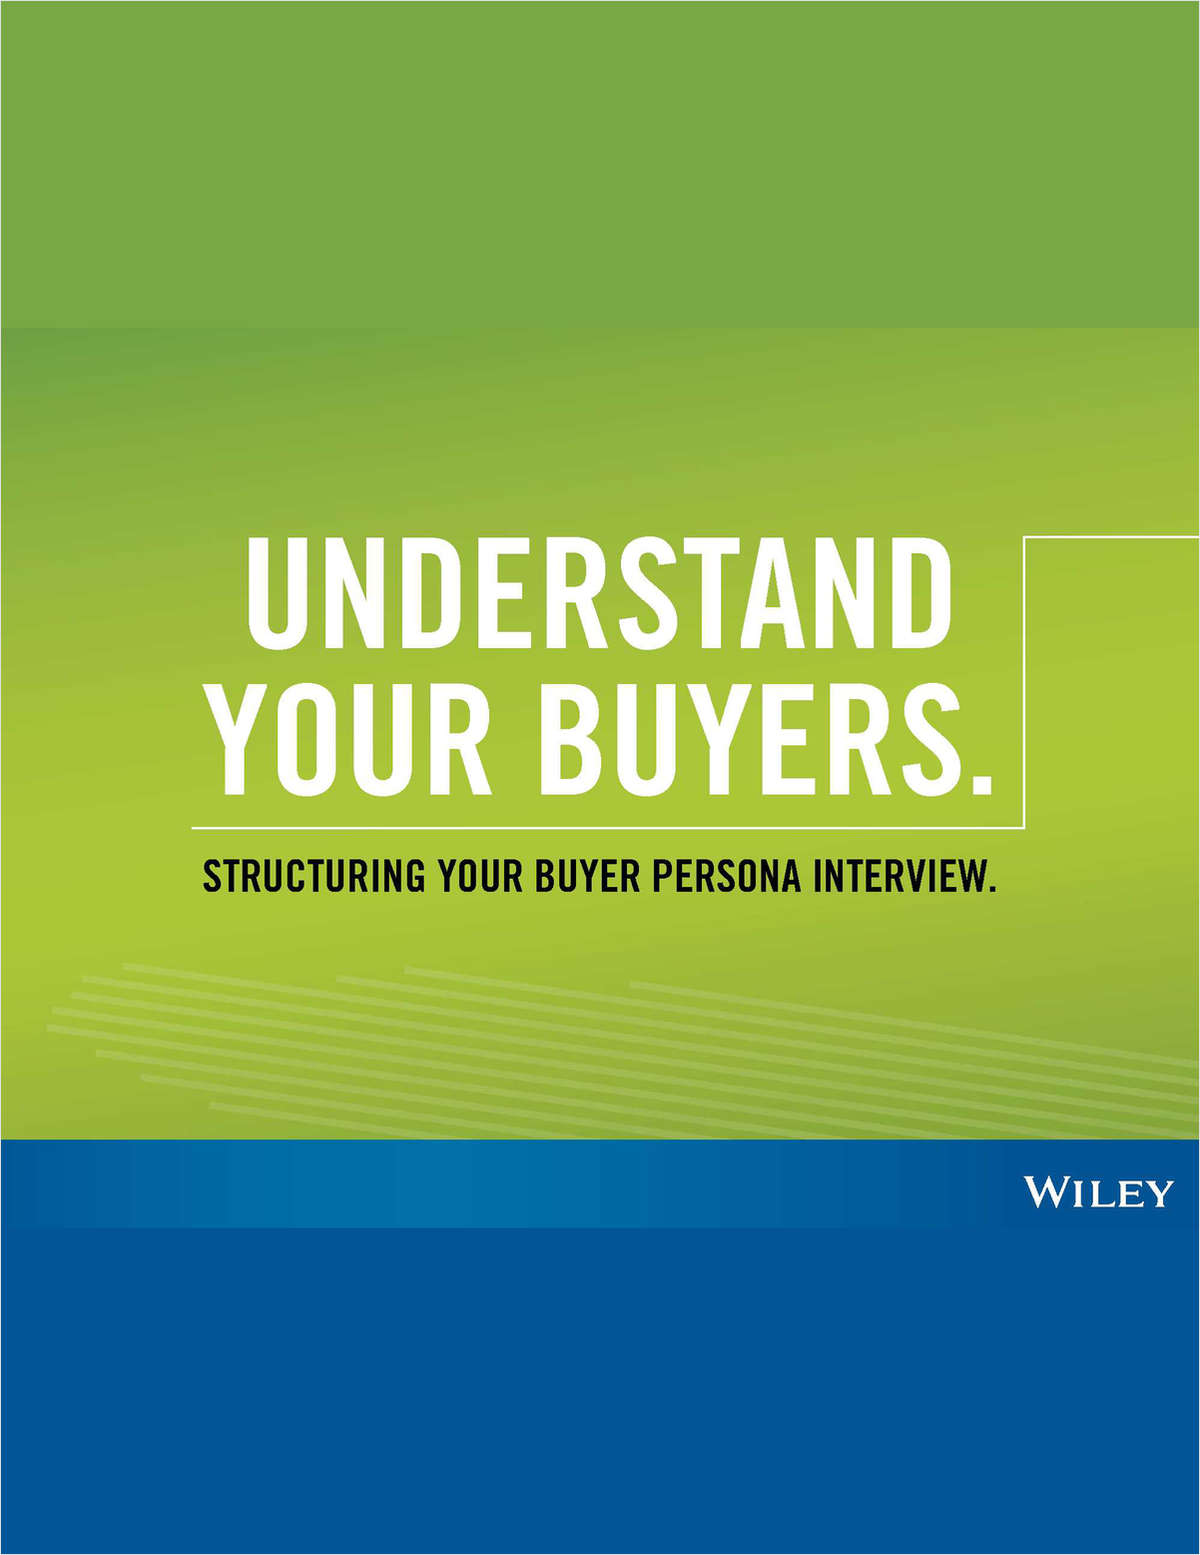 Understand Your Buyers: Structuring Your Buyer Persona Interview